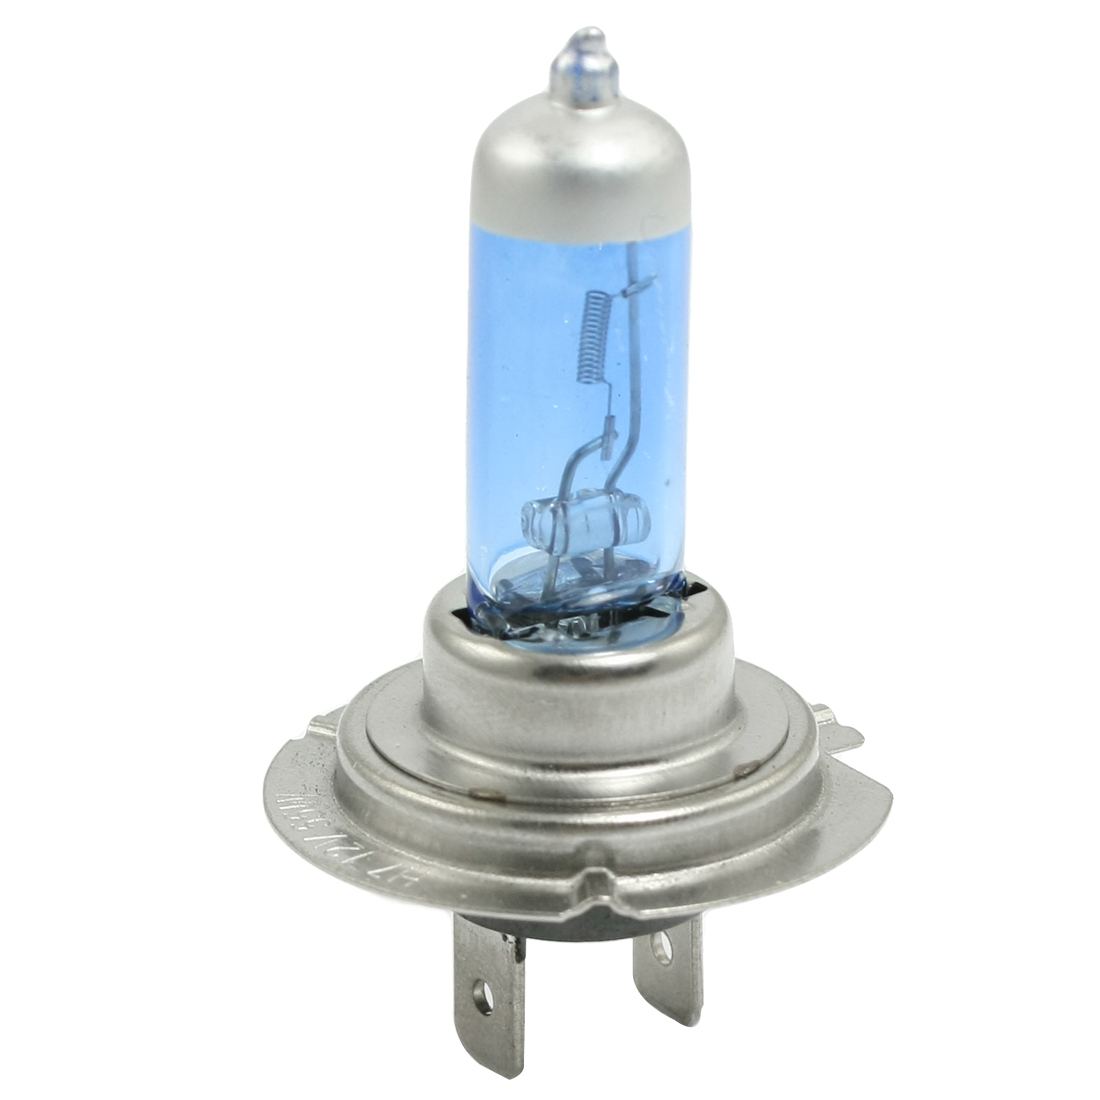 H7 55W DC 12V Vehicle Car Warm White Halogen Foglight Lamp Replacement Bulb